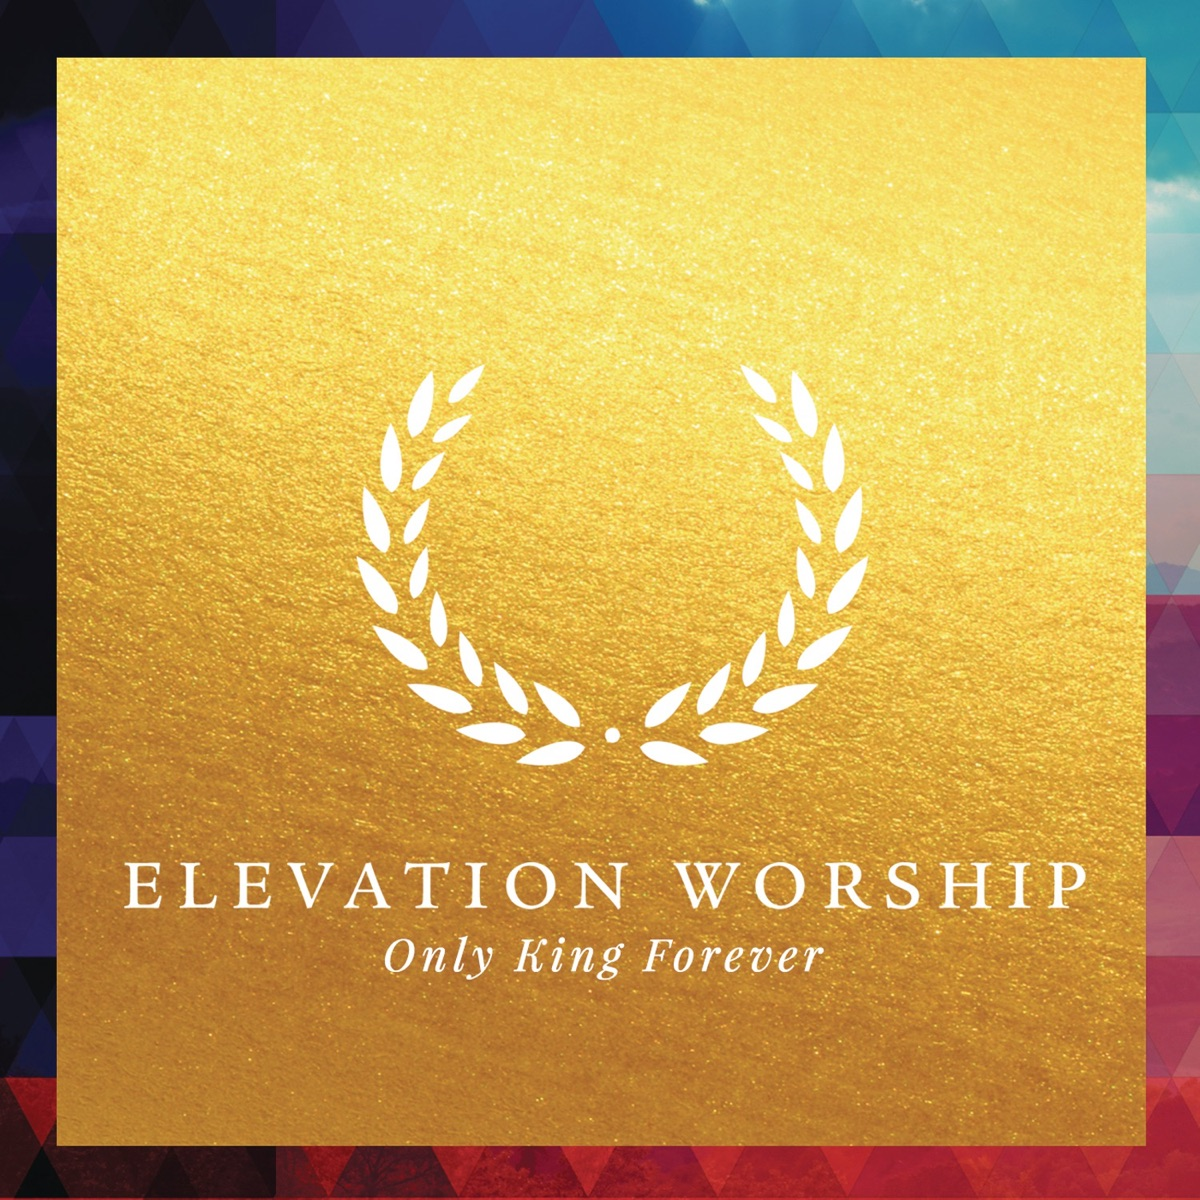 Only King Forever Live Elevation Worship CD cover